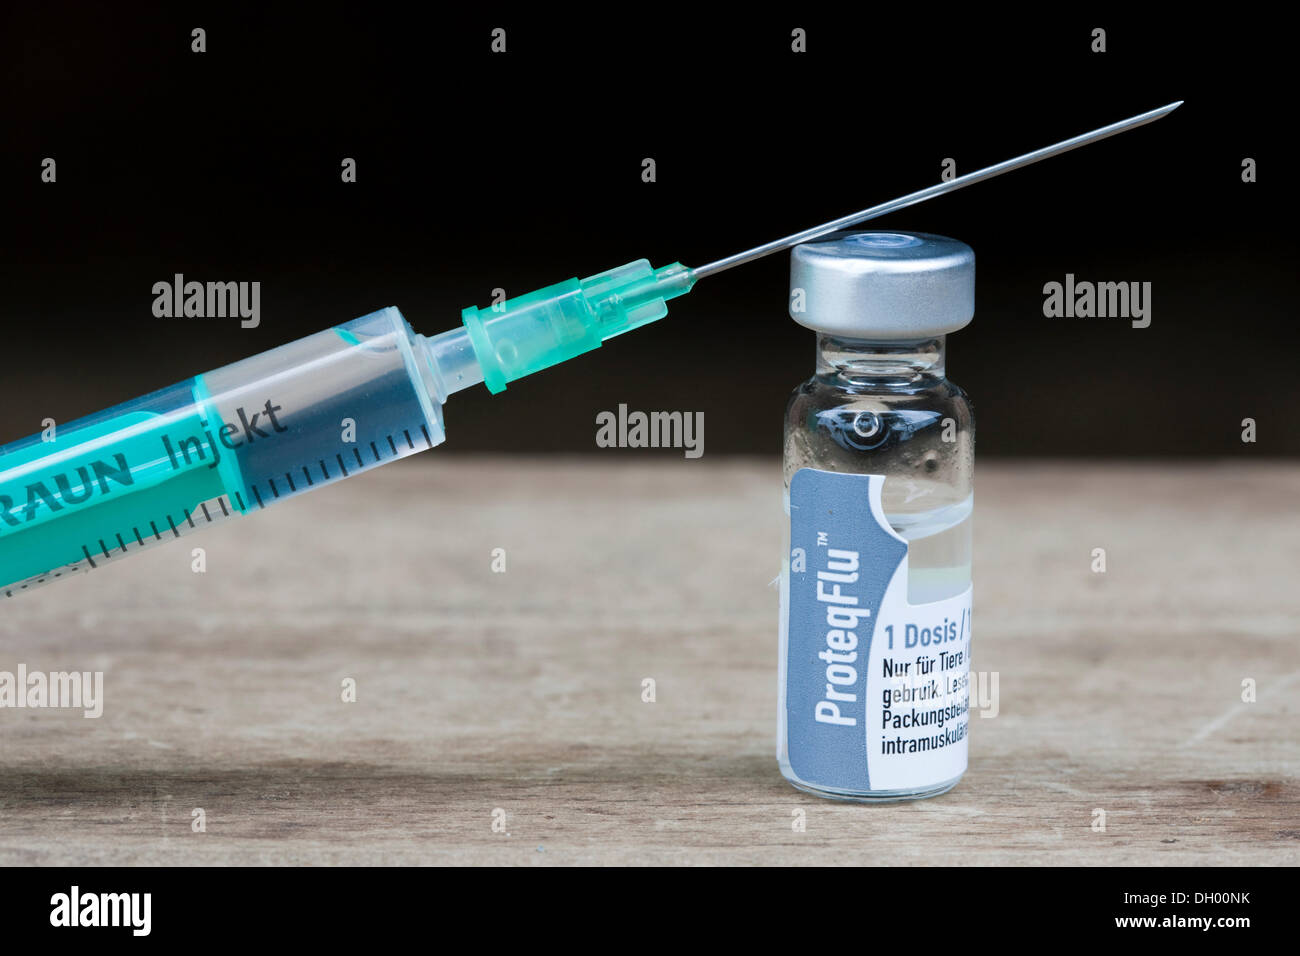 Influenza vaccine for horses, bottle of serum and an injection needle - Stock Image